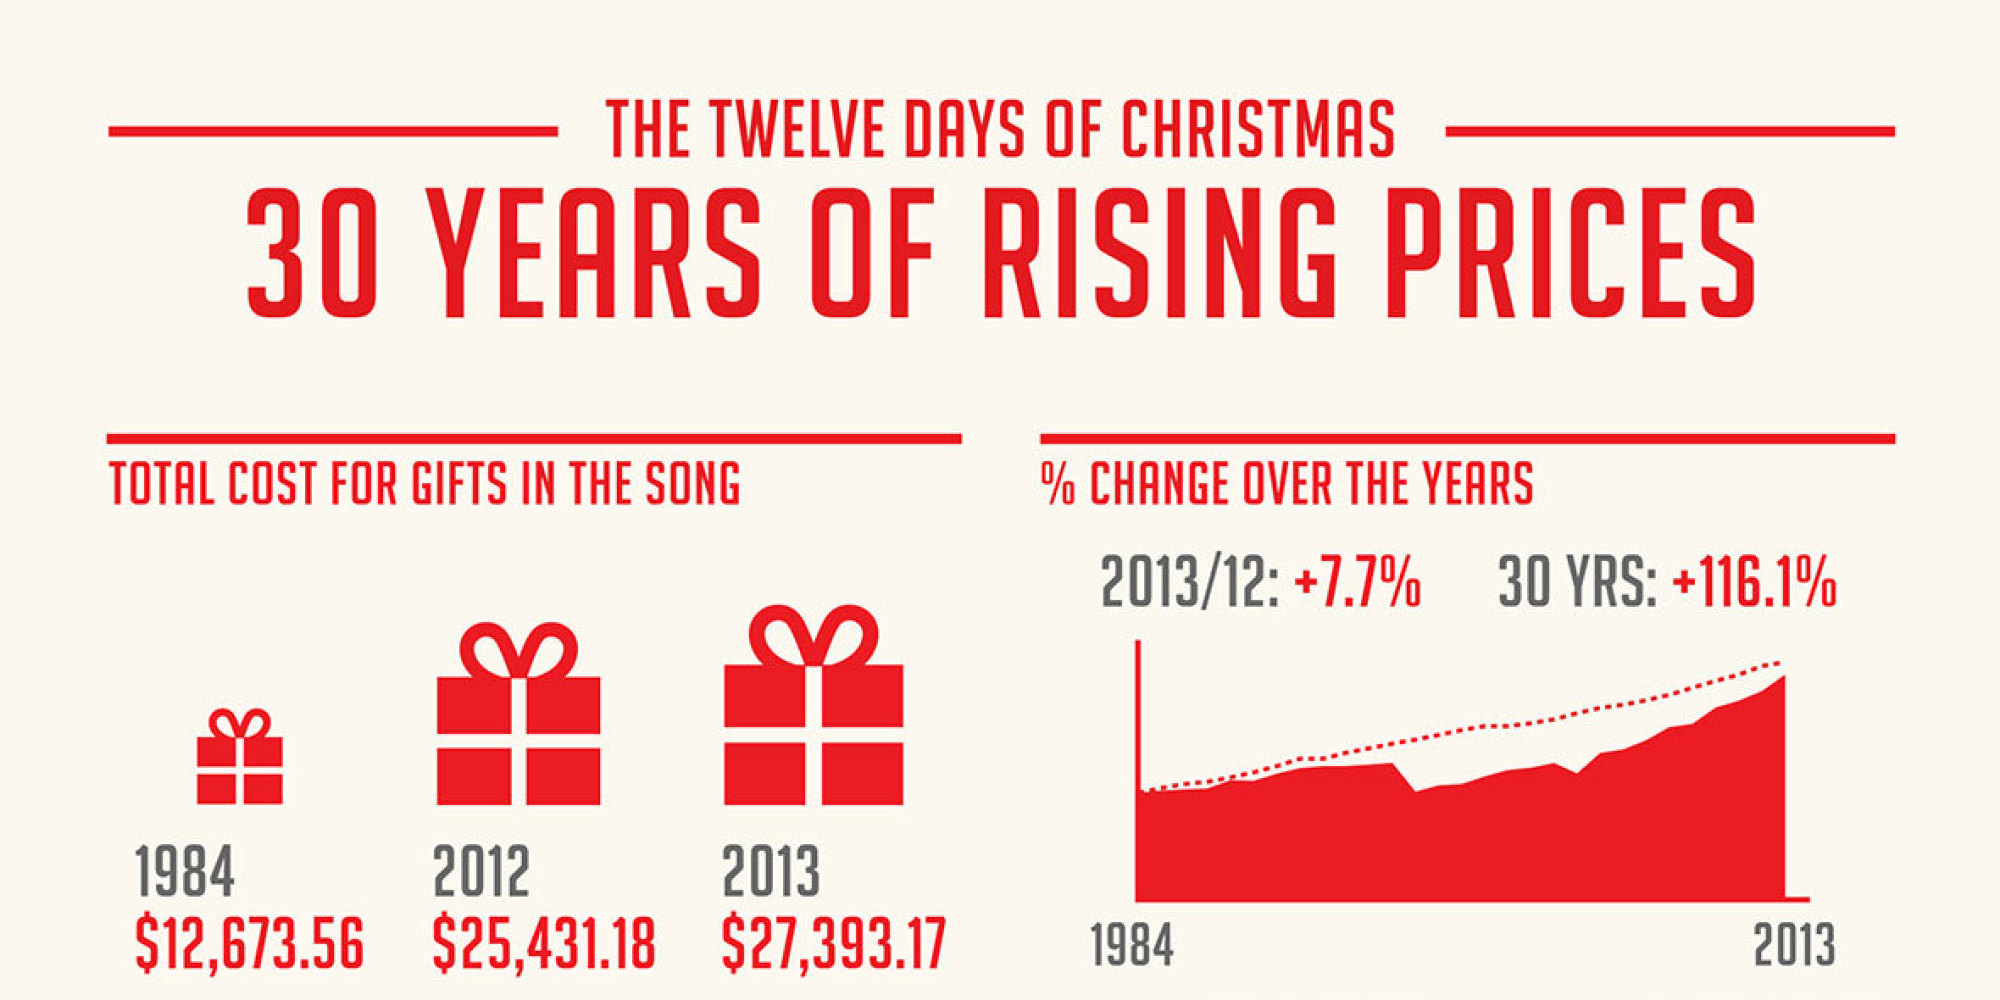 Here's How Much It Would Cost To Buy Everything From 'The 12 Days Of Christmas'